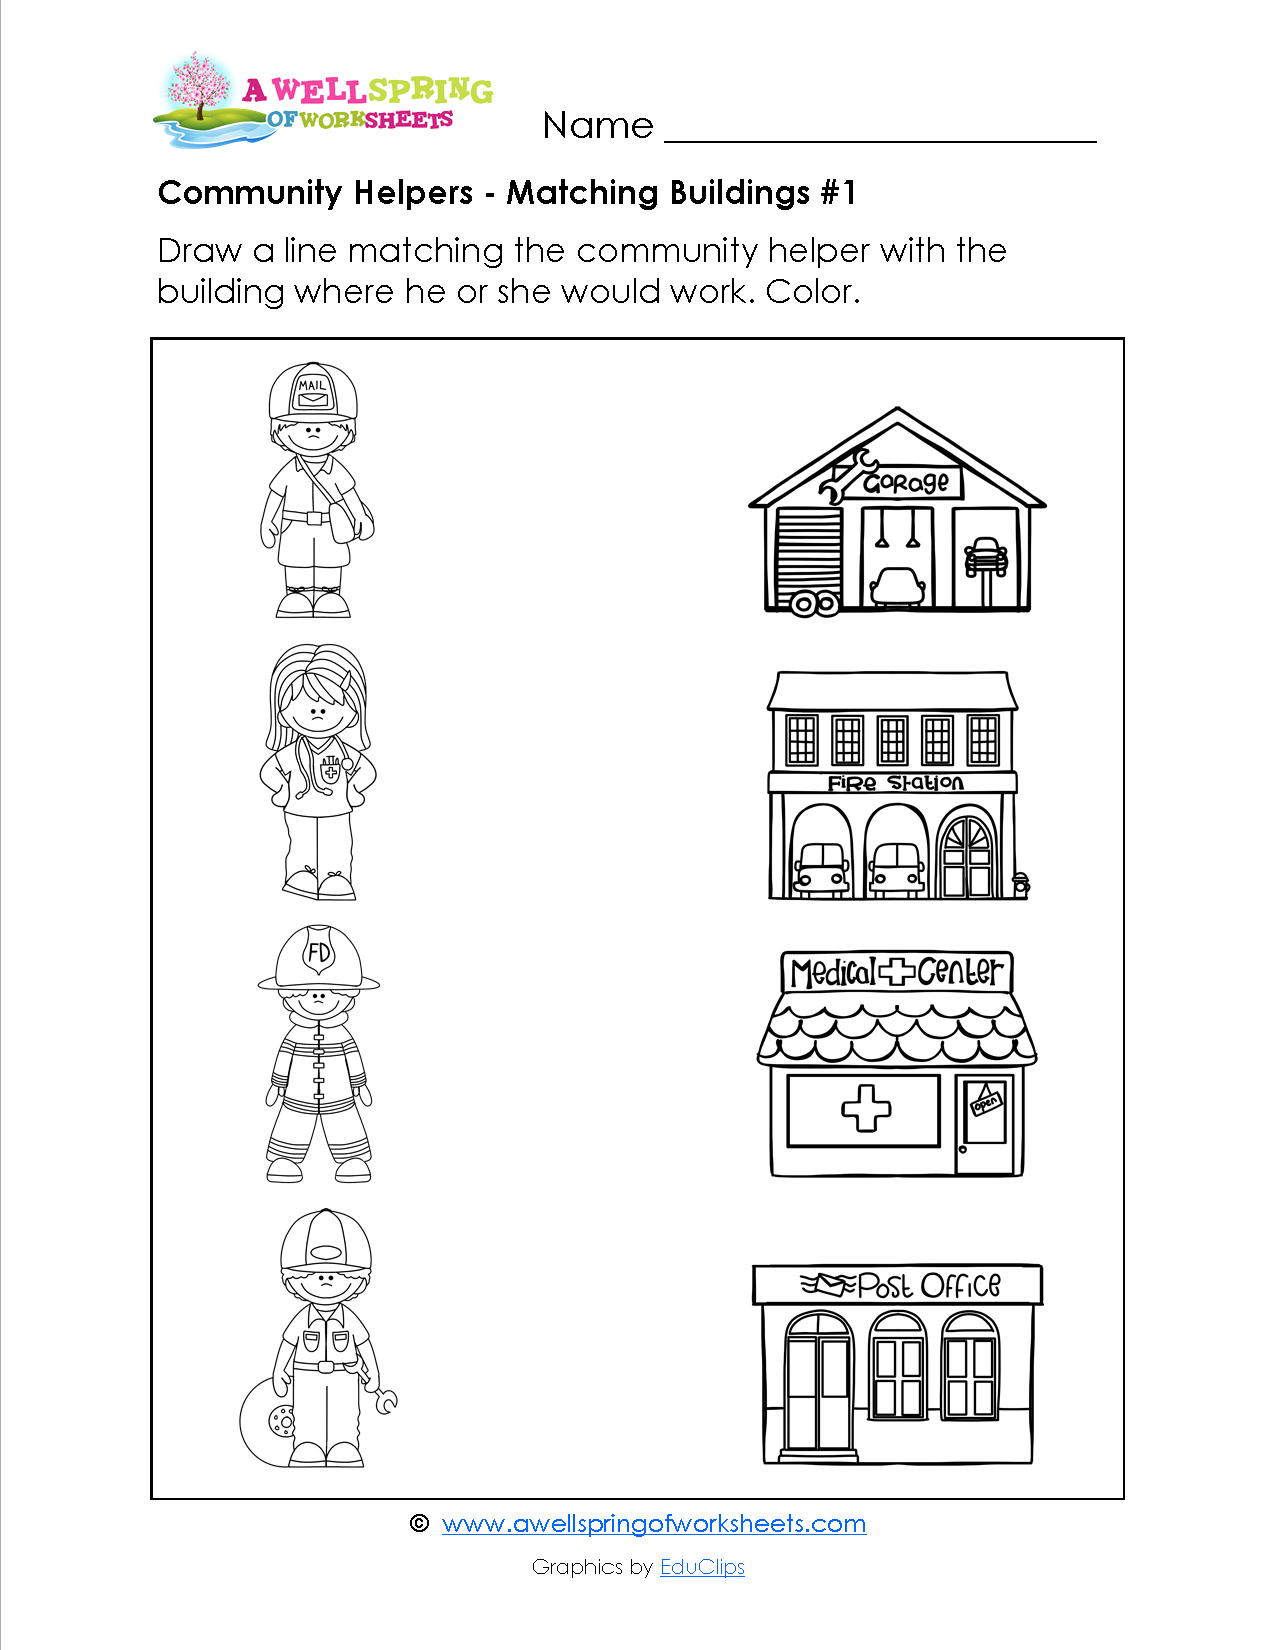 worksheet Community Worksheets grade level worksheets fun community helpers and matching in these kids draw a line from the helper